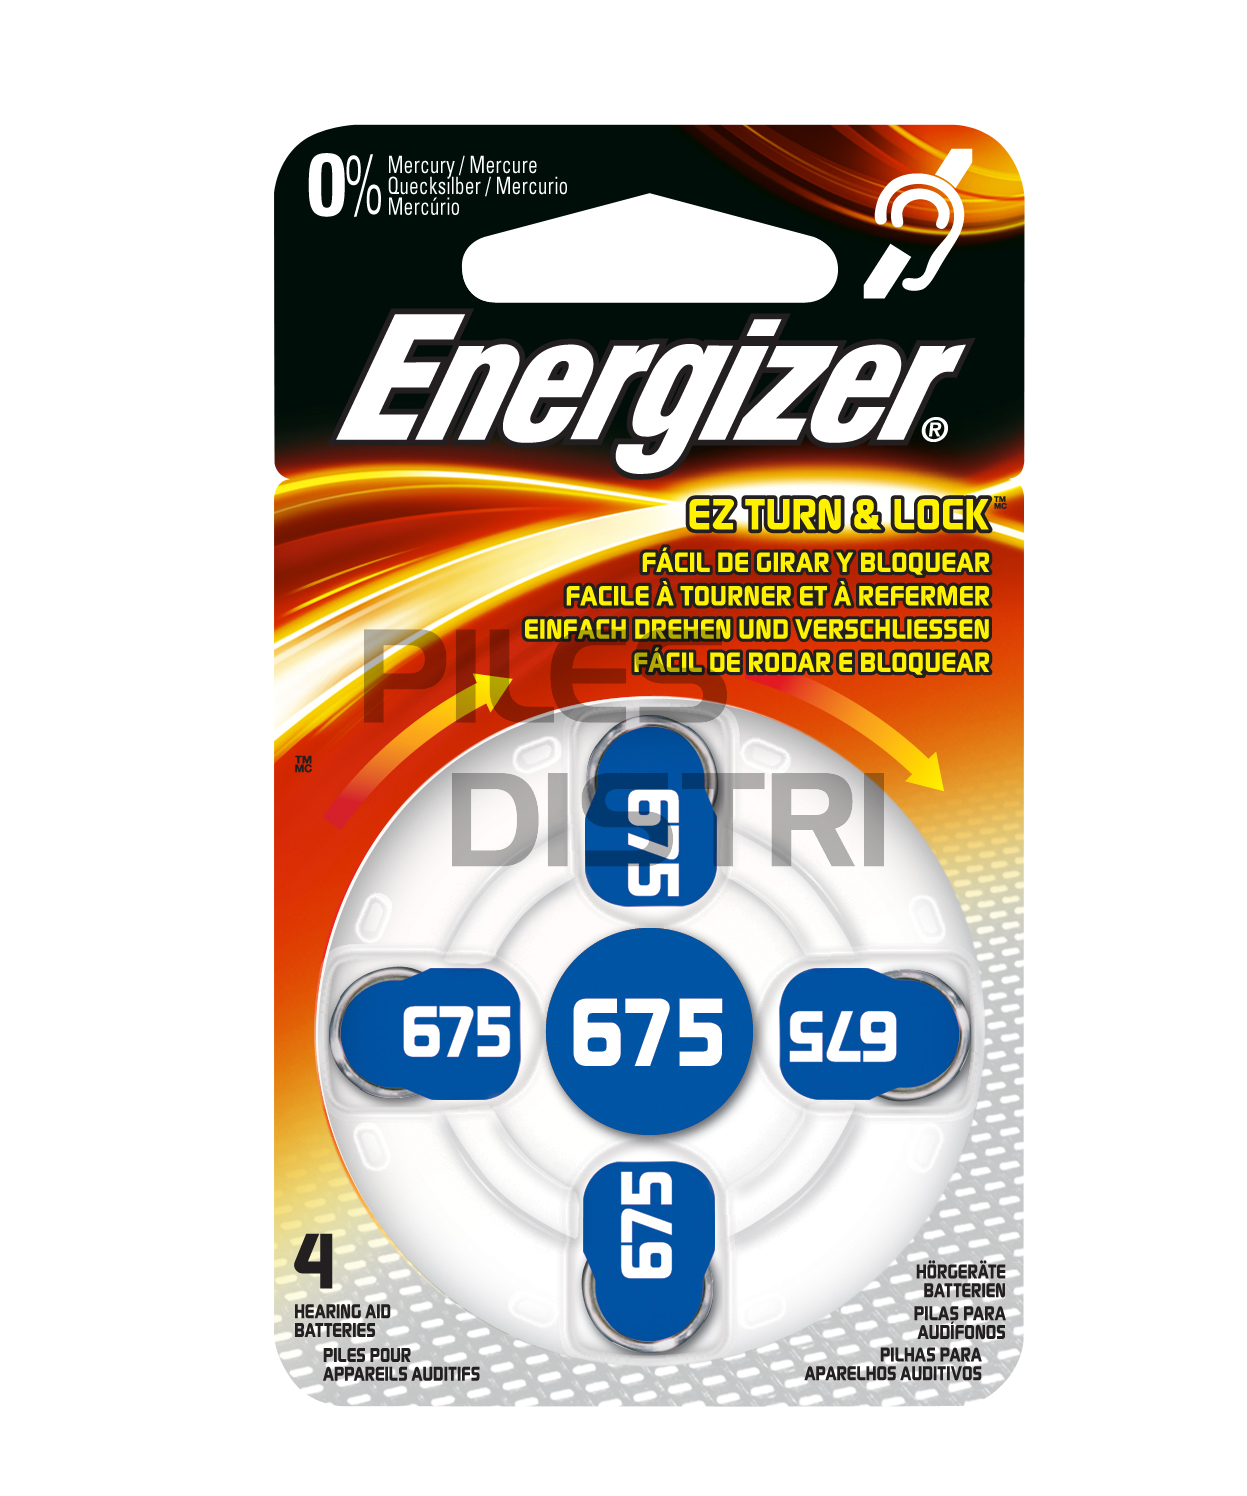 Pile auditive 675 - PR44 - 1.4v Energizer - 0% mercure - par 4